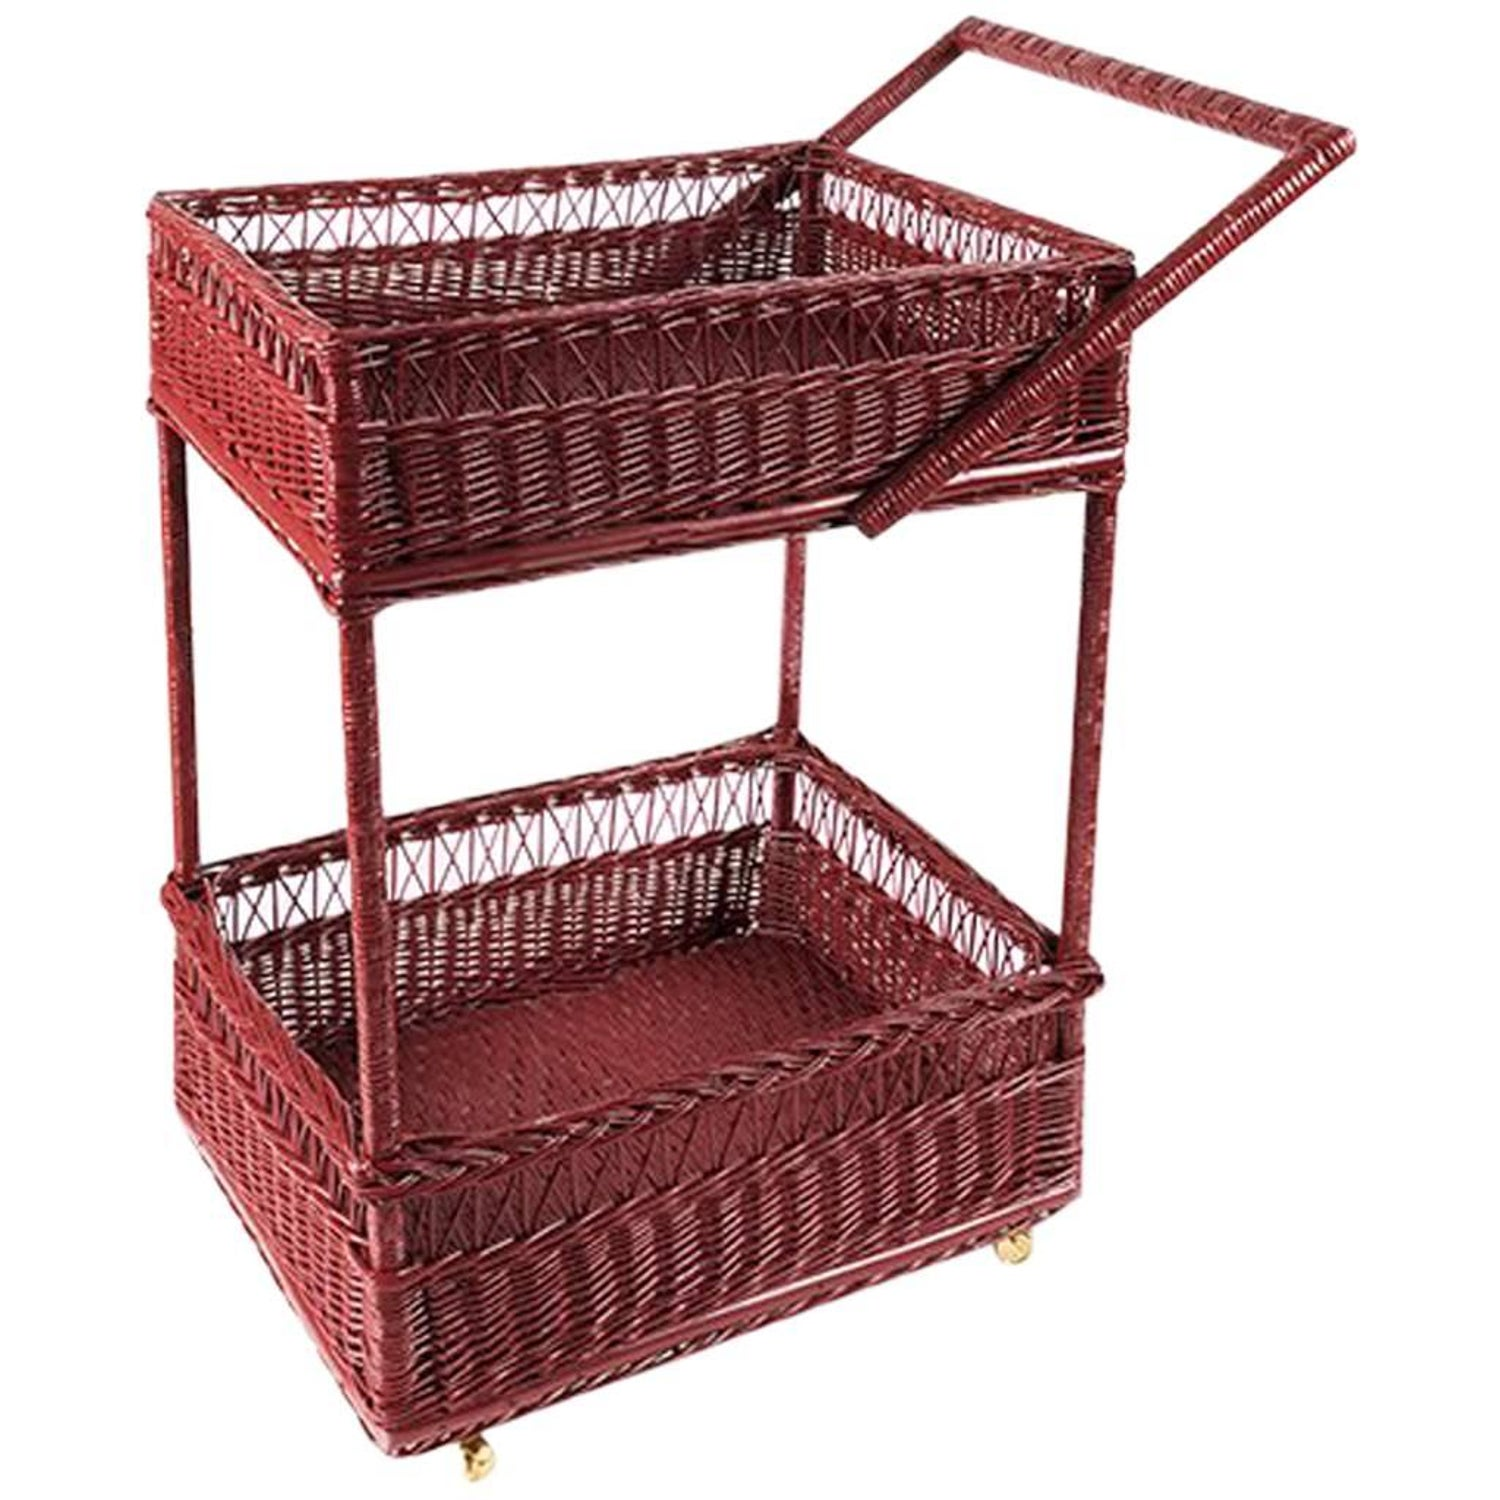 furniture 123. handwoven wicker bar cart in balmoral red furniture 123 a